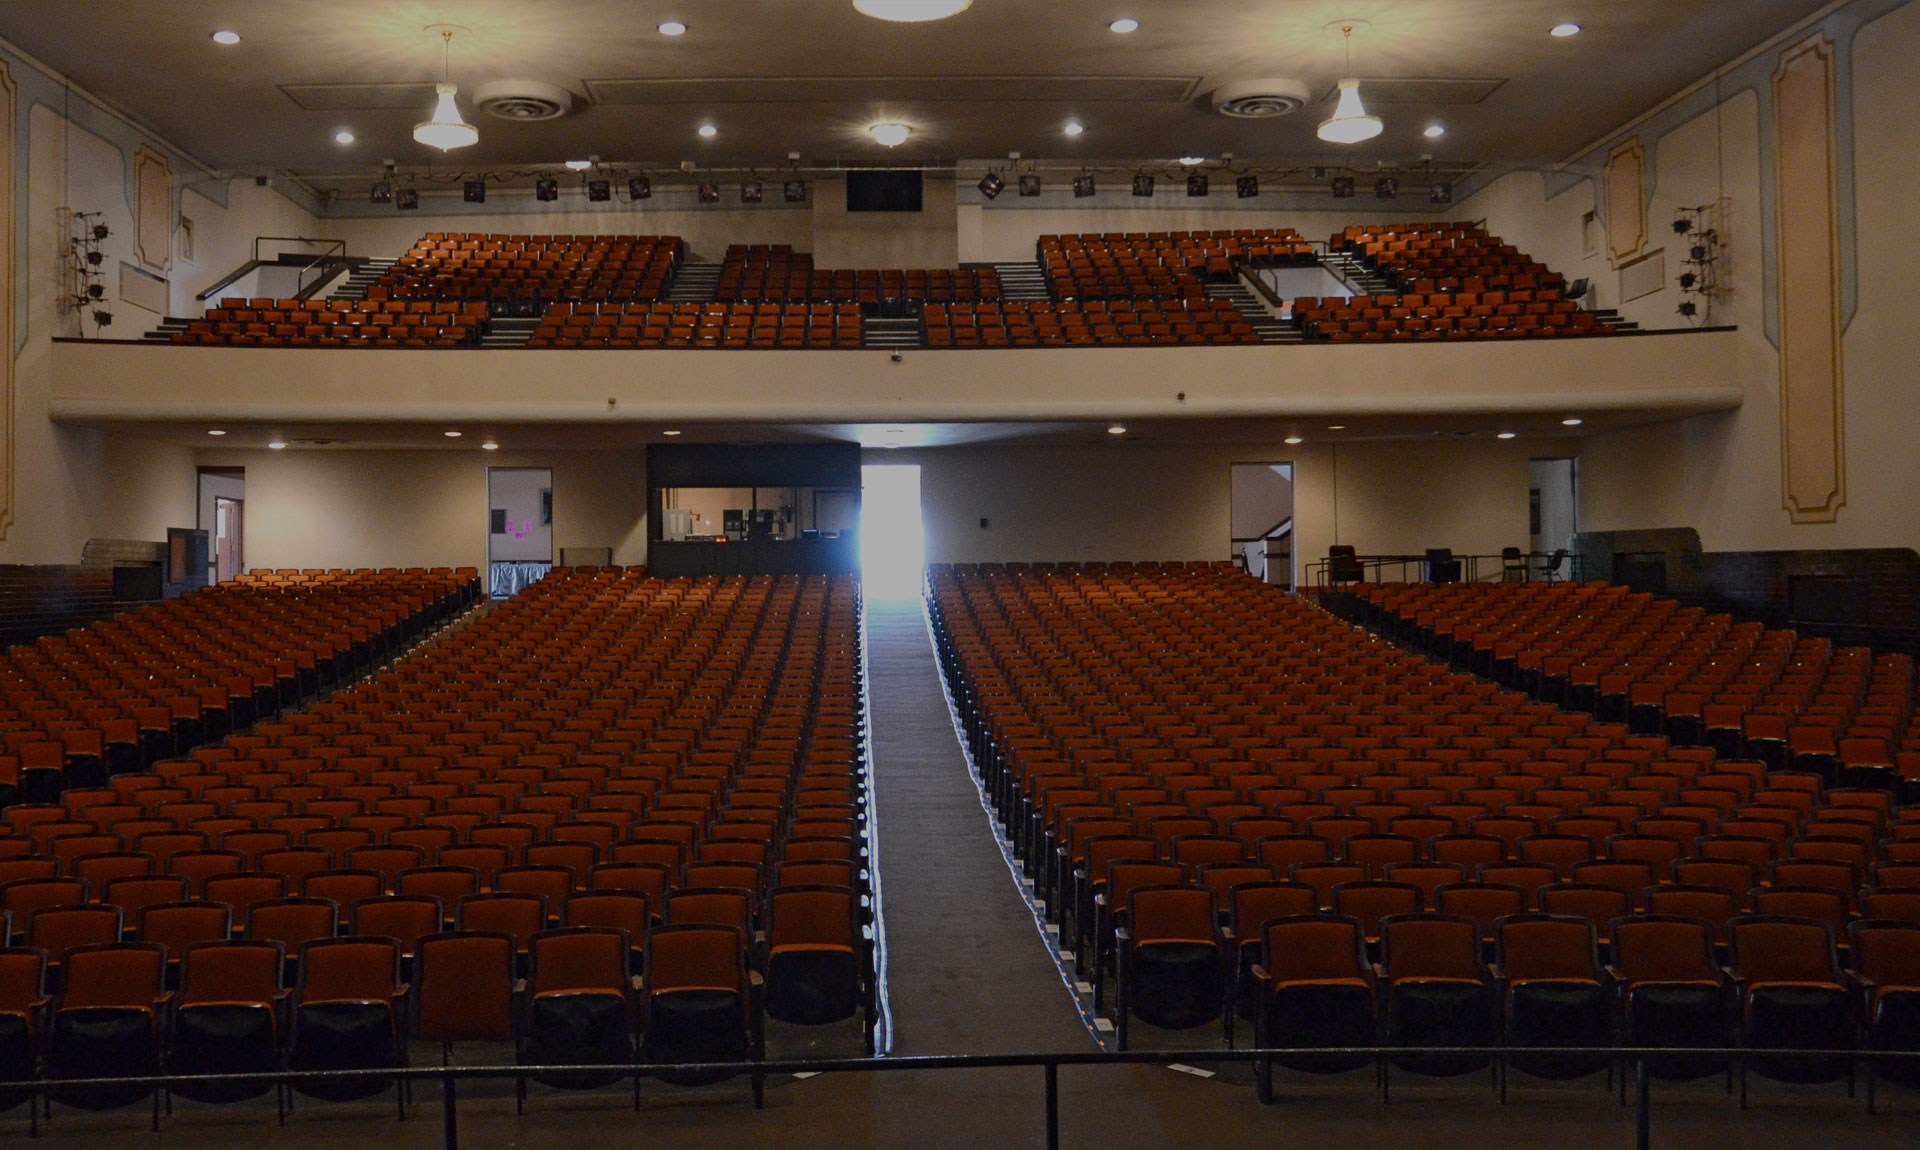 Secrest-Auditorium-Zanesville-Ohio-Parallax-Home.jpg